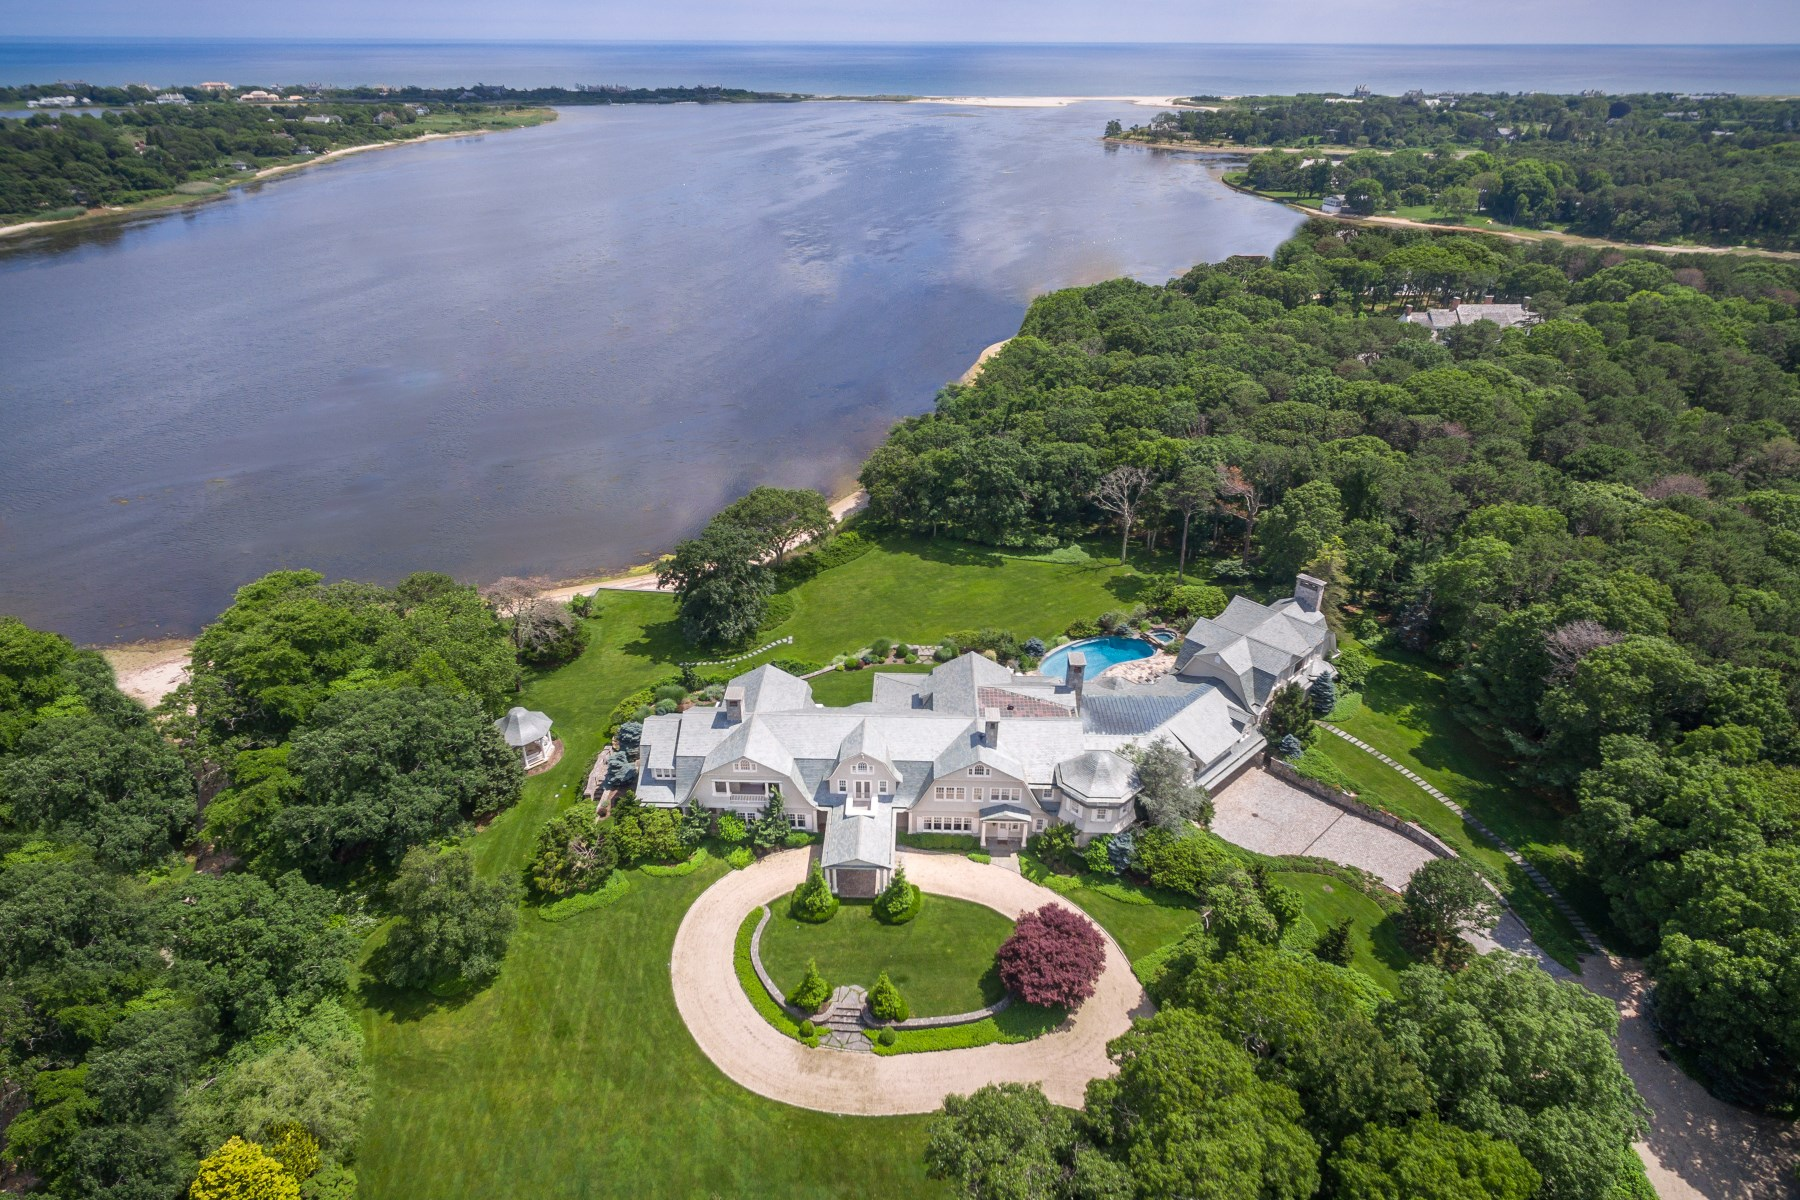 Single Family Home for Active at Burnt Point 38 Mathews Road Wainscott, New York 11975 United States